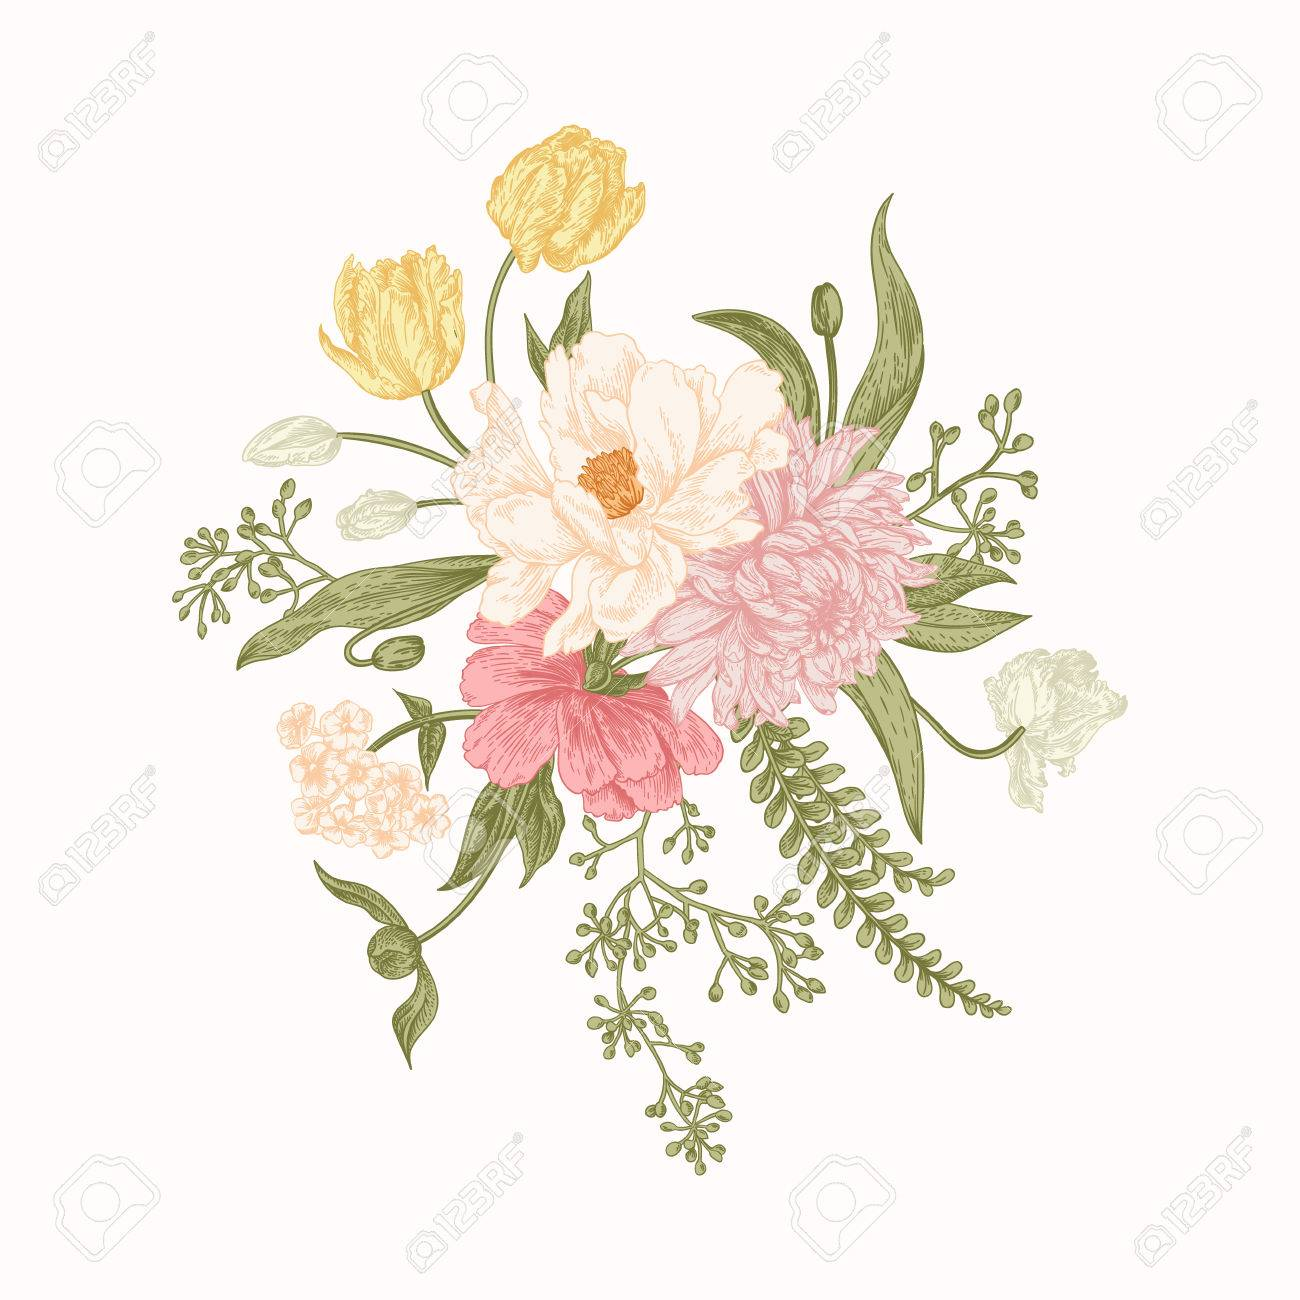 Composition With Spring Flowers Bouquet In Vintage Style Botanical